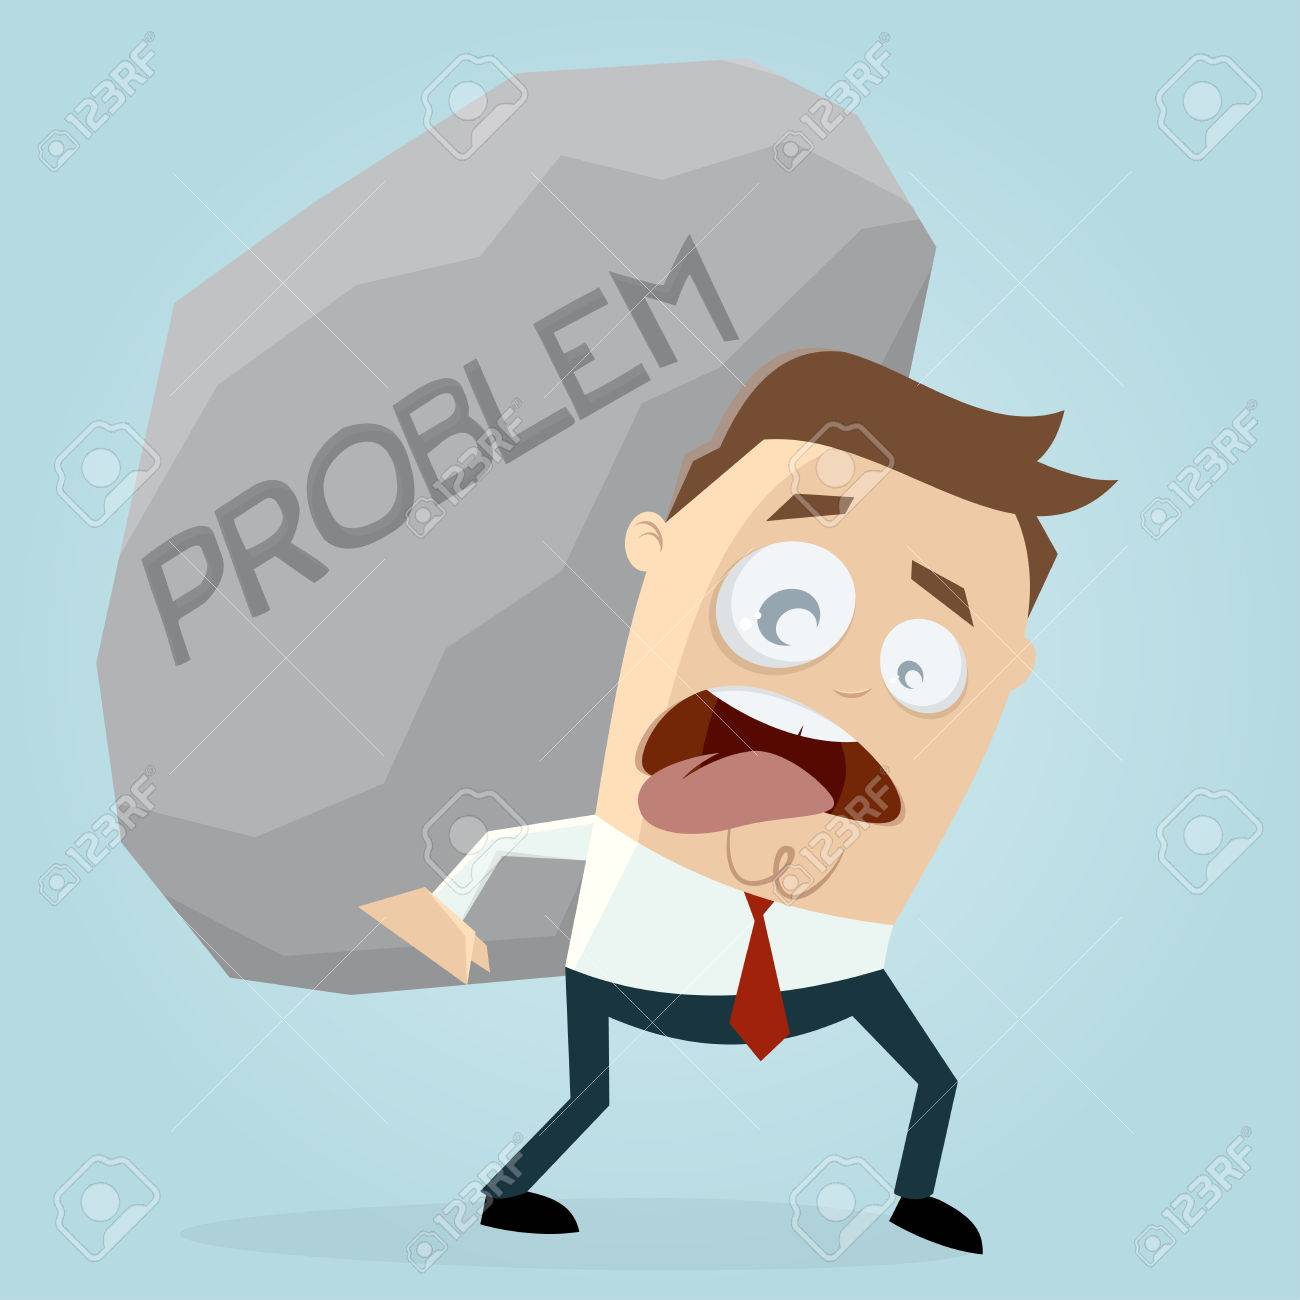 clipart of businessman carrying a big problem rock.